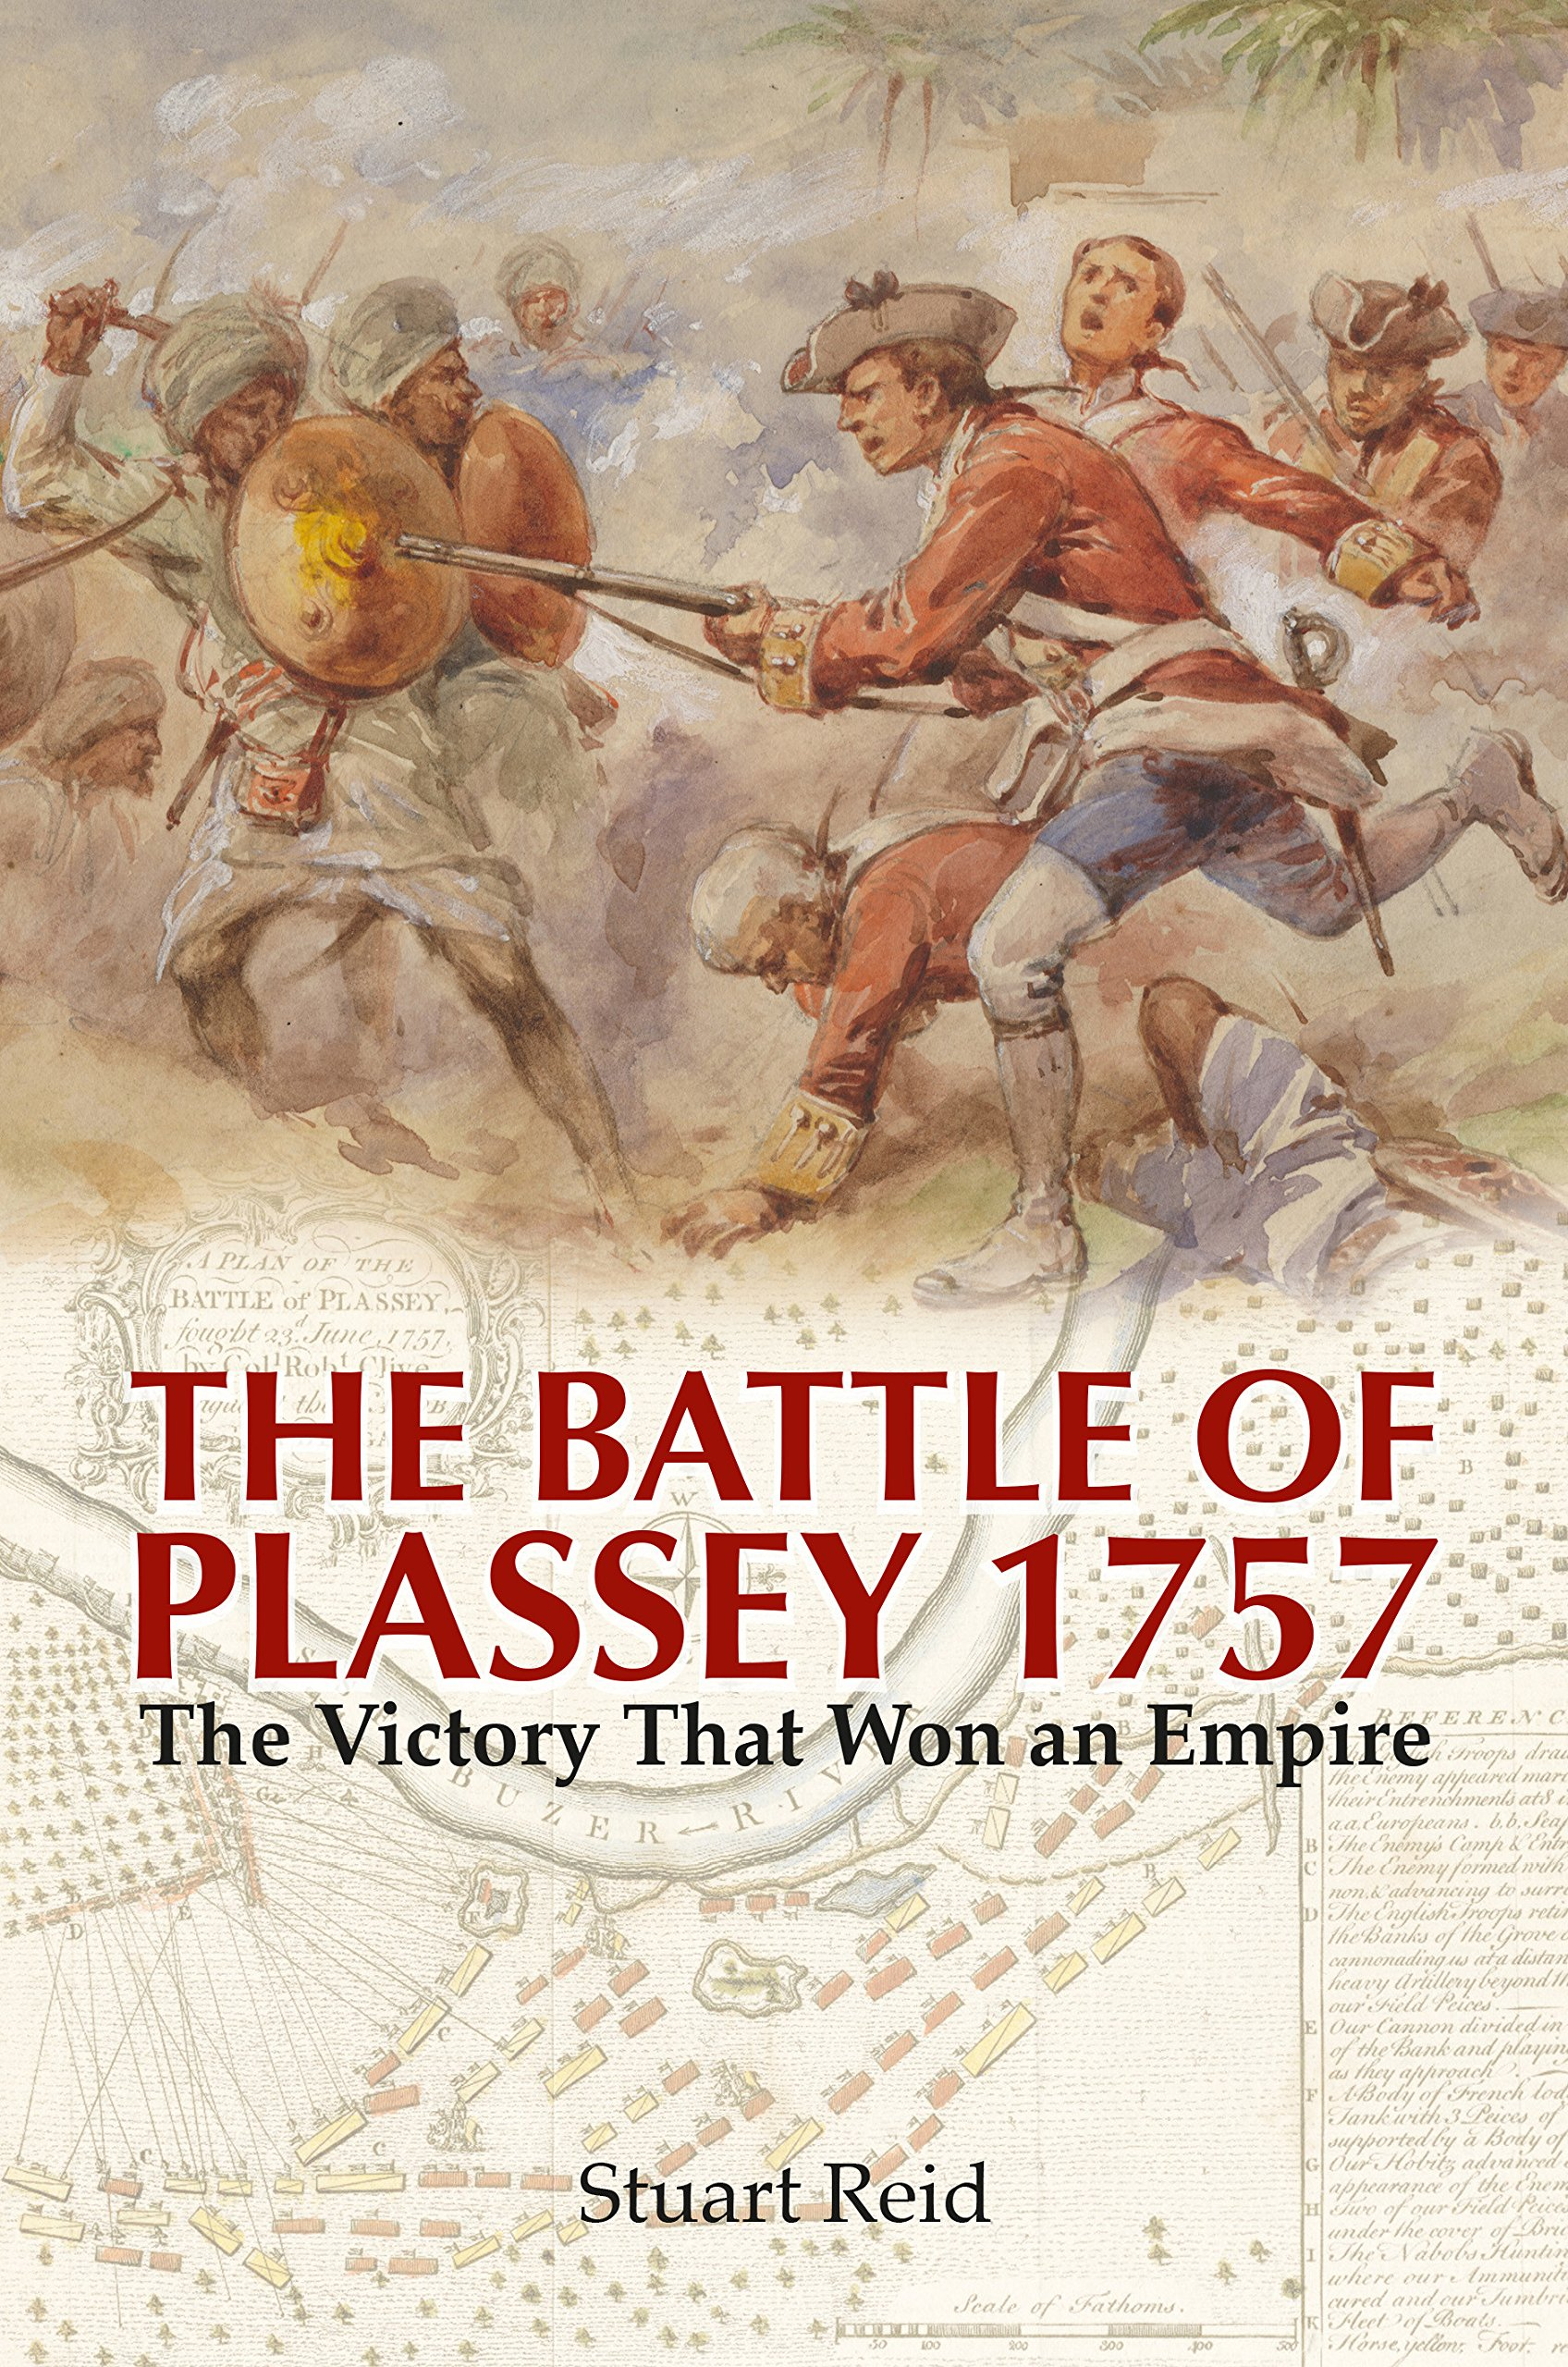 Amazon.com: The Battle of Plassey 1757: The Victory That Won an Empire  (9781473885264): Stuart Reid: Books